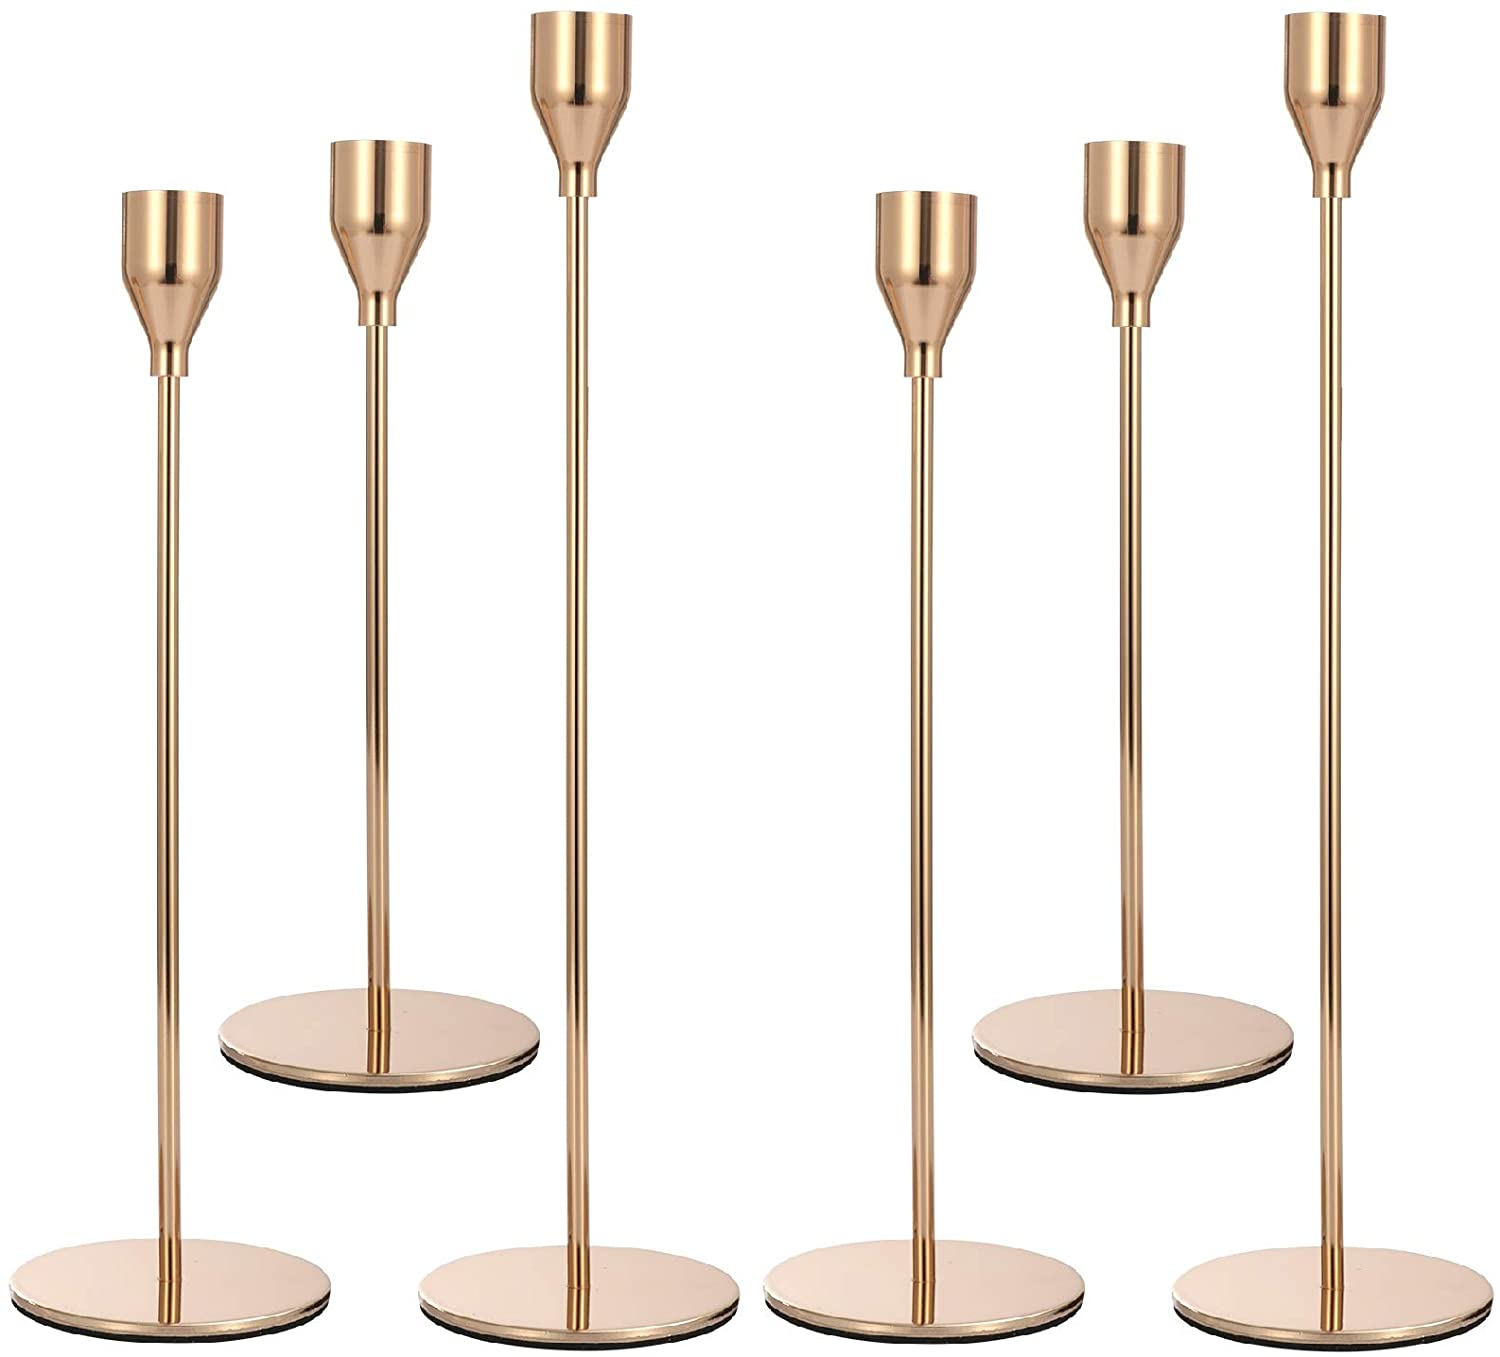 Anndason Set of 6 Gold Candlestick Holders Gold Candle Holder Taper Candle Holders Candle Holders Decorative Candlestick Holder for Home Decor, Wedding, Dinning, Party, Anniversary (Gold)